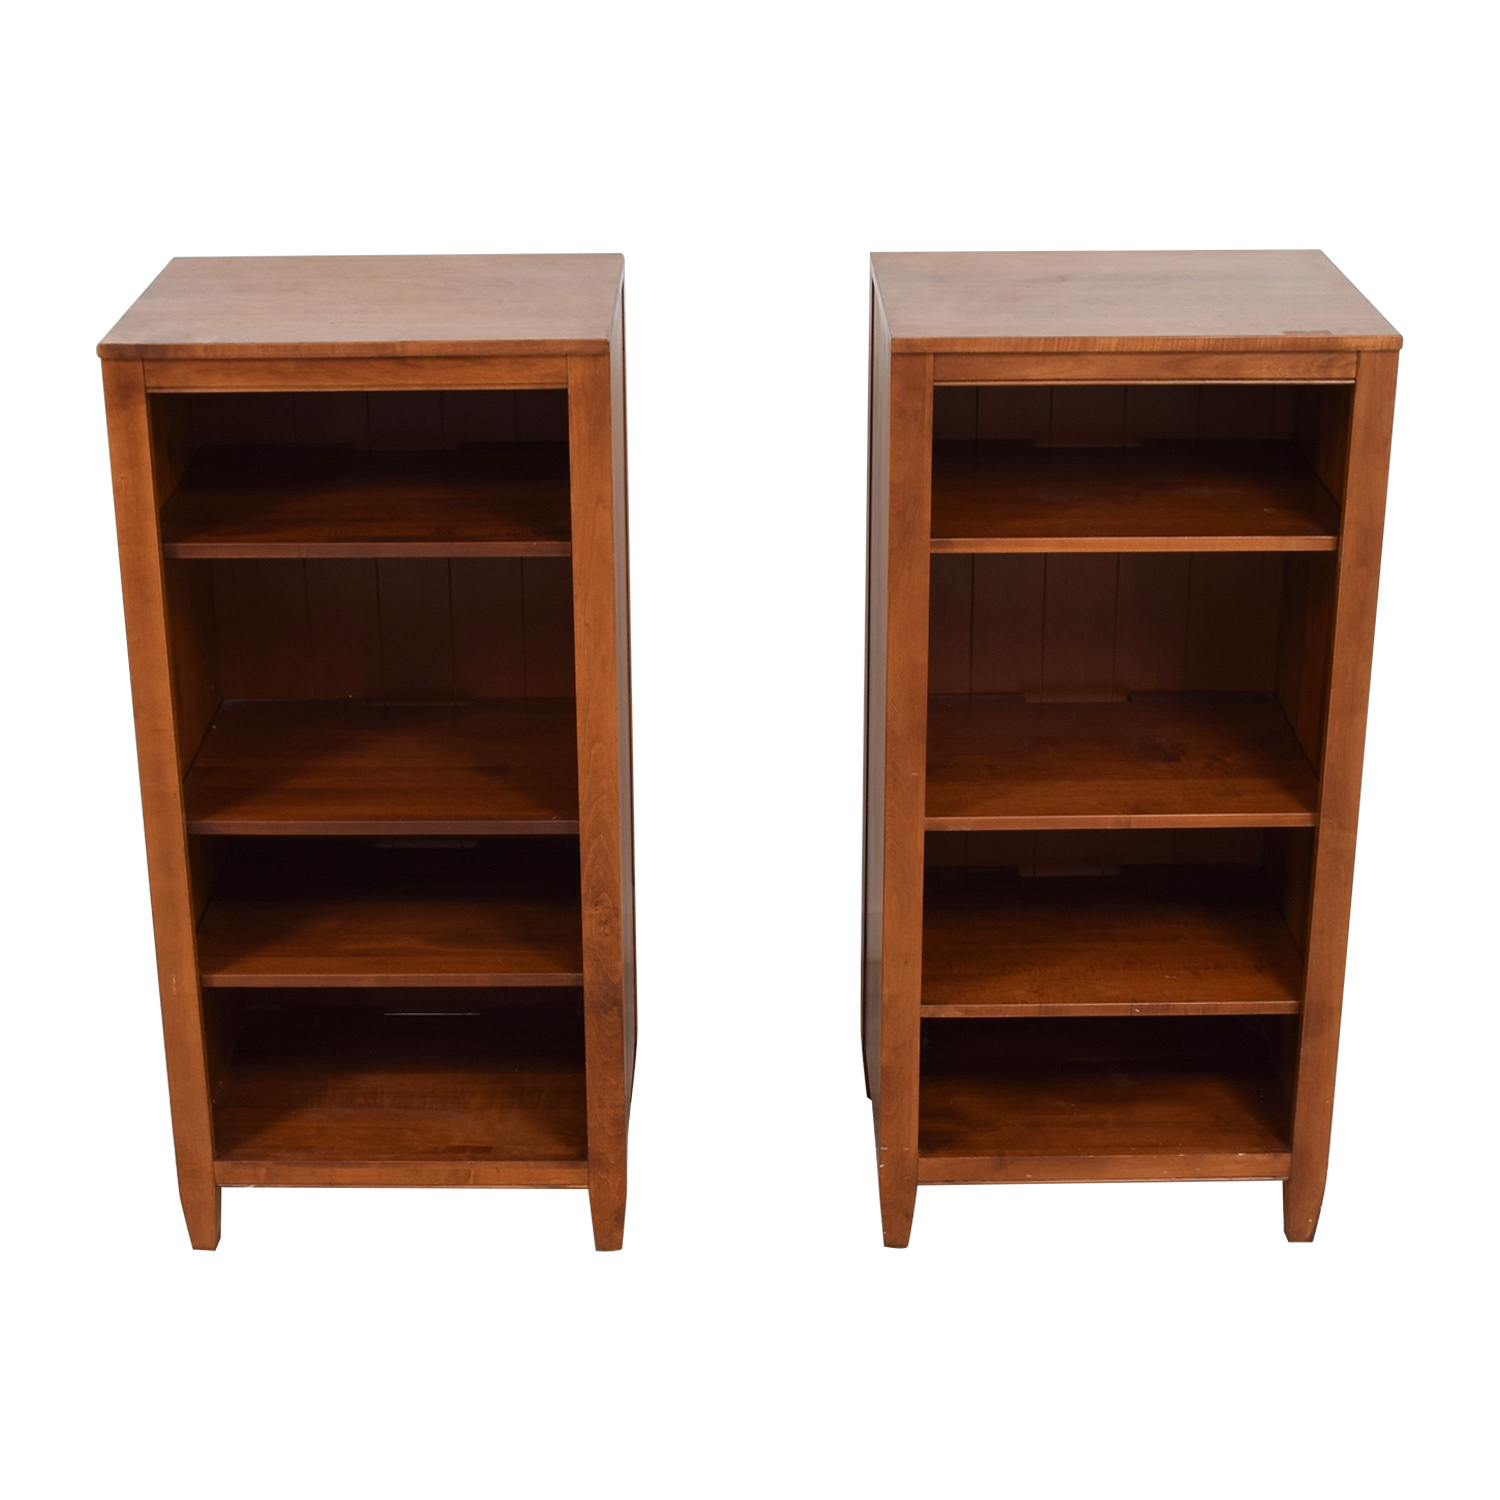 Ethan Allen Ethan Allen Country Colors Collection Wood Bookcases